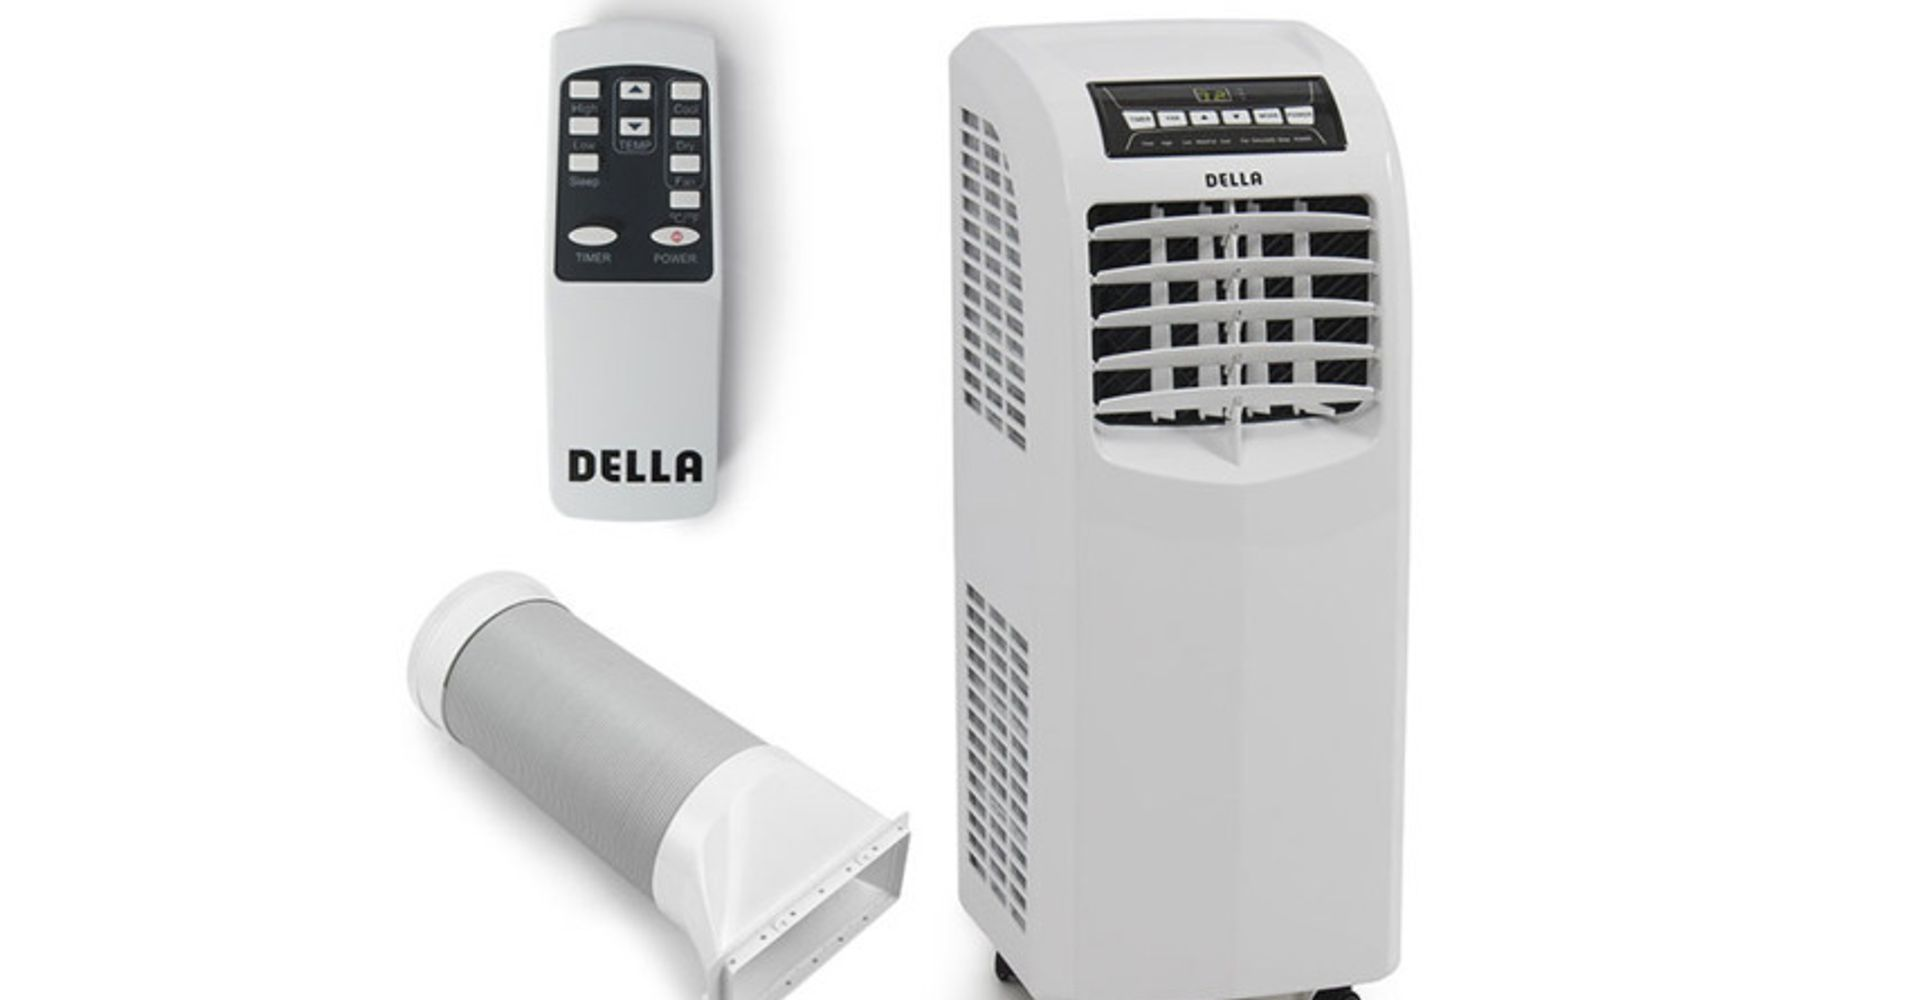 Brilliant The 12 Best Air Conditioners On Amazon According To Wiring Cloud Oideiuggs Outletorg